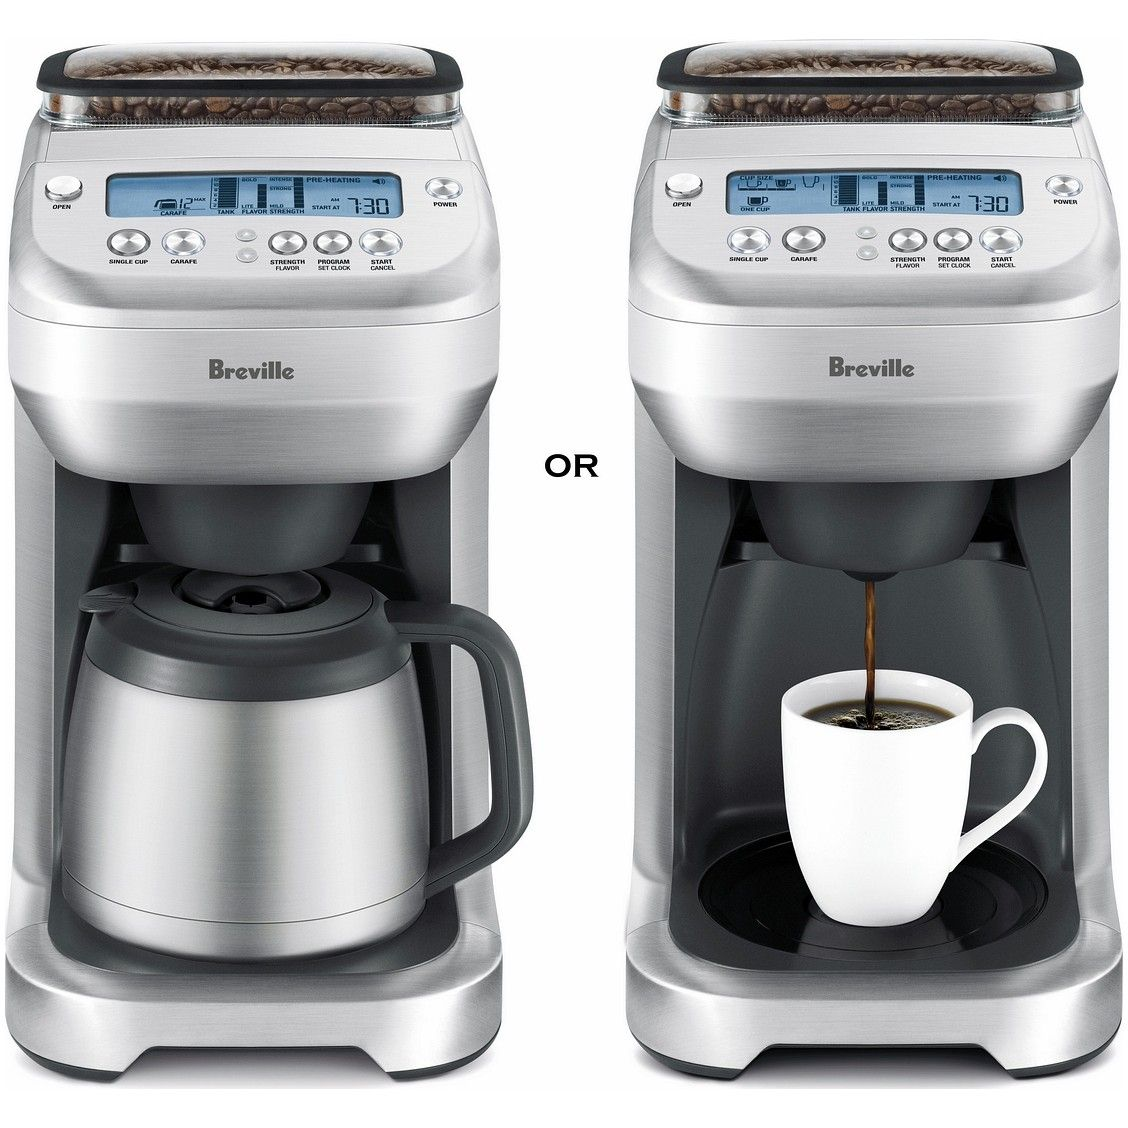 Everything About Coffe Coffee Maker W Grinder One Cup Or